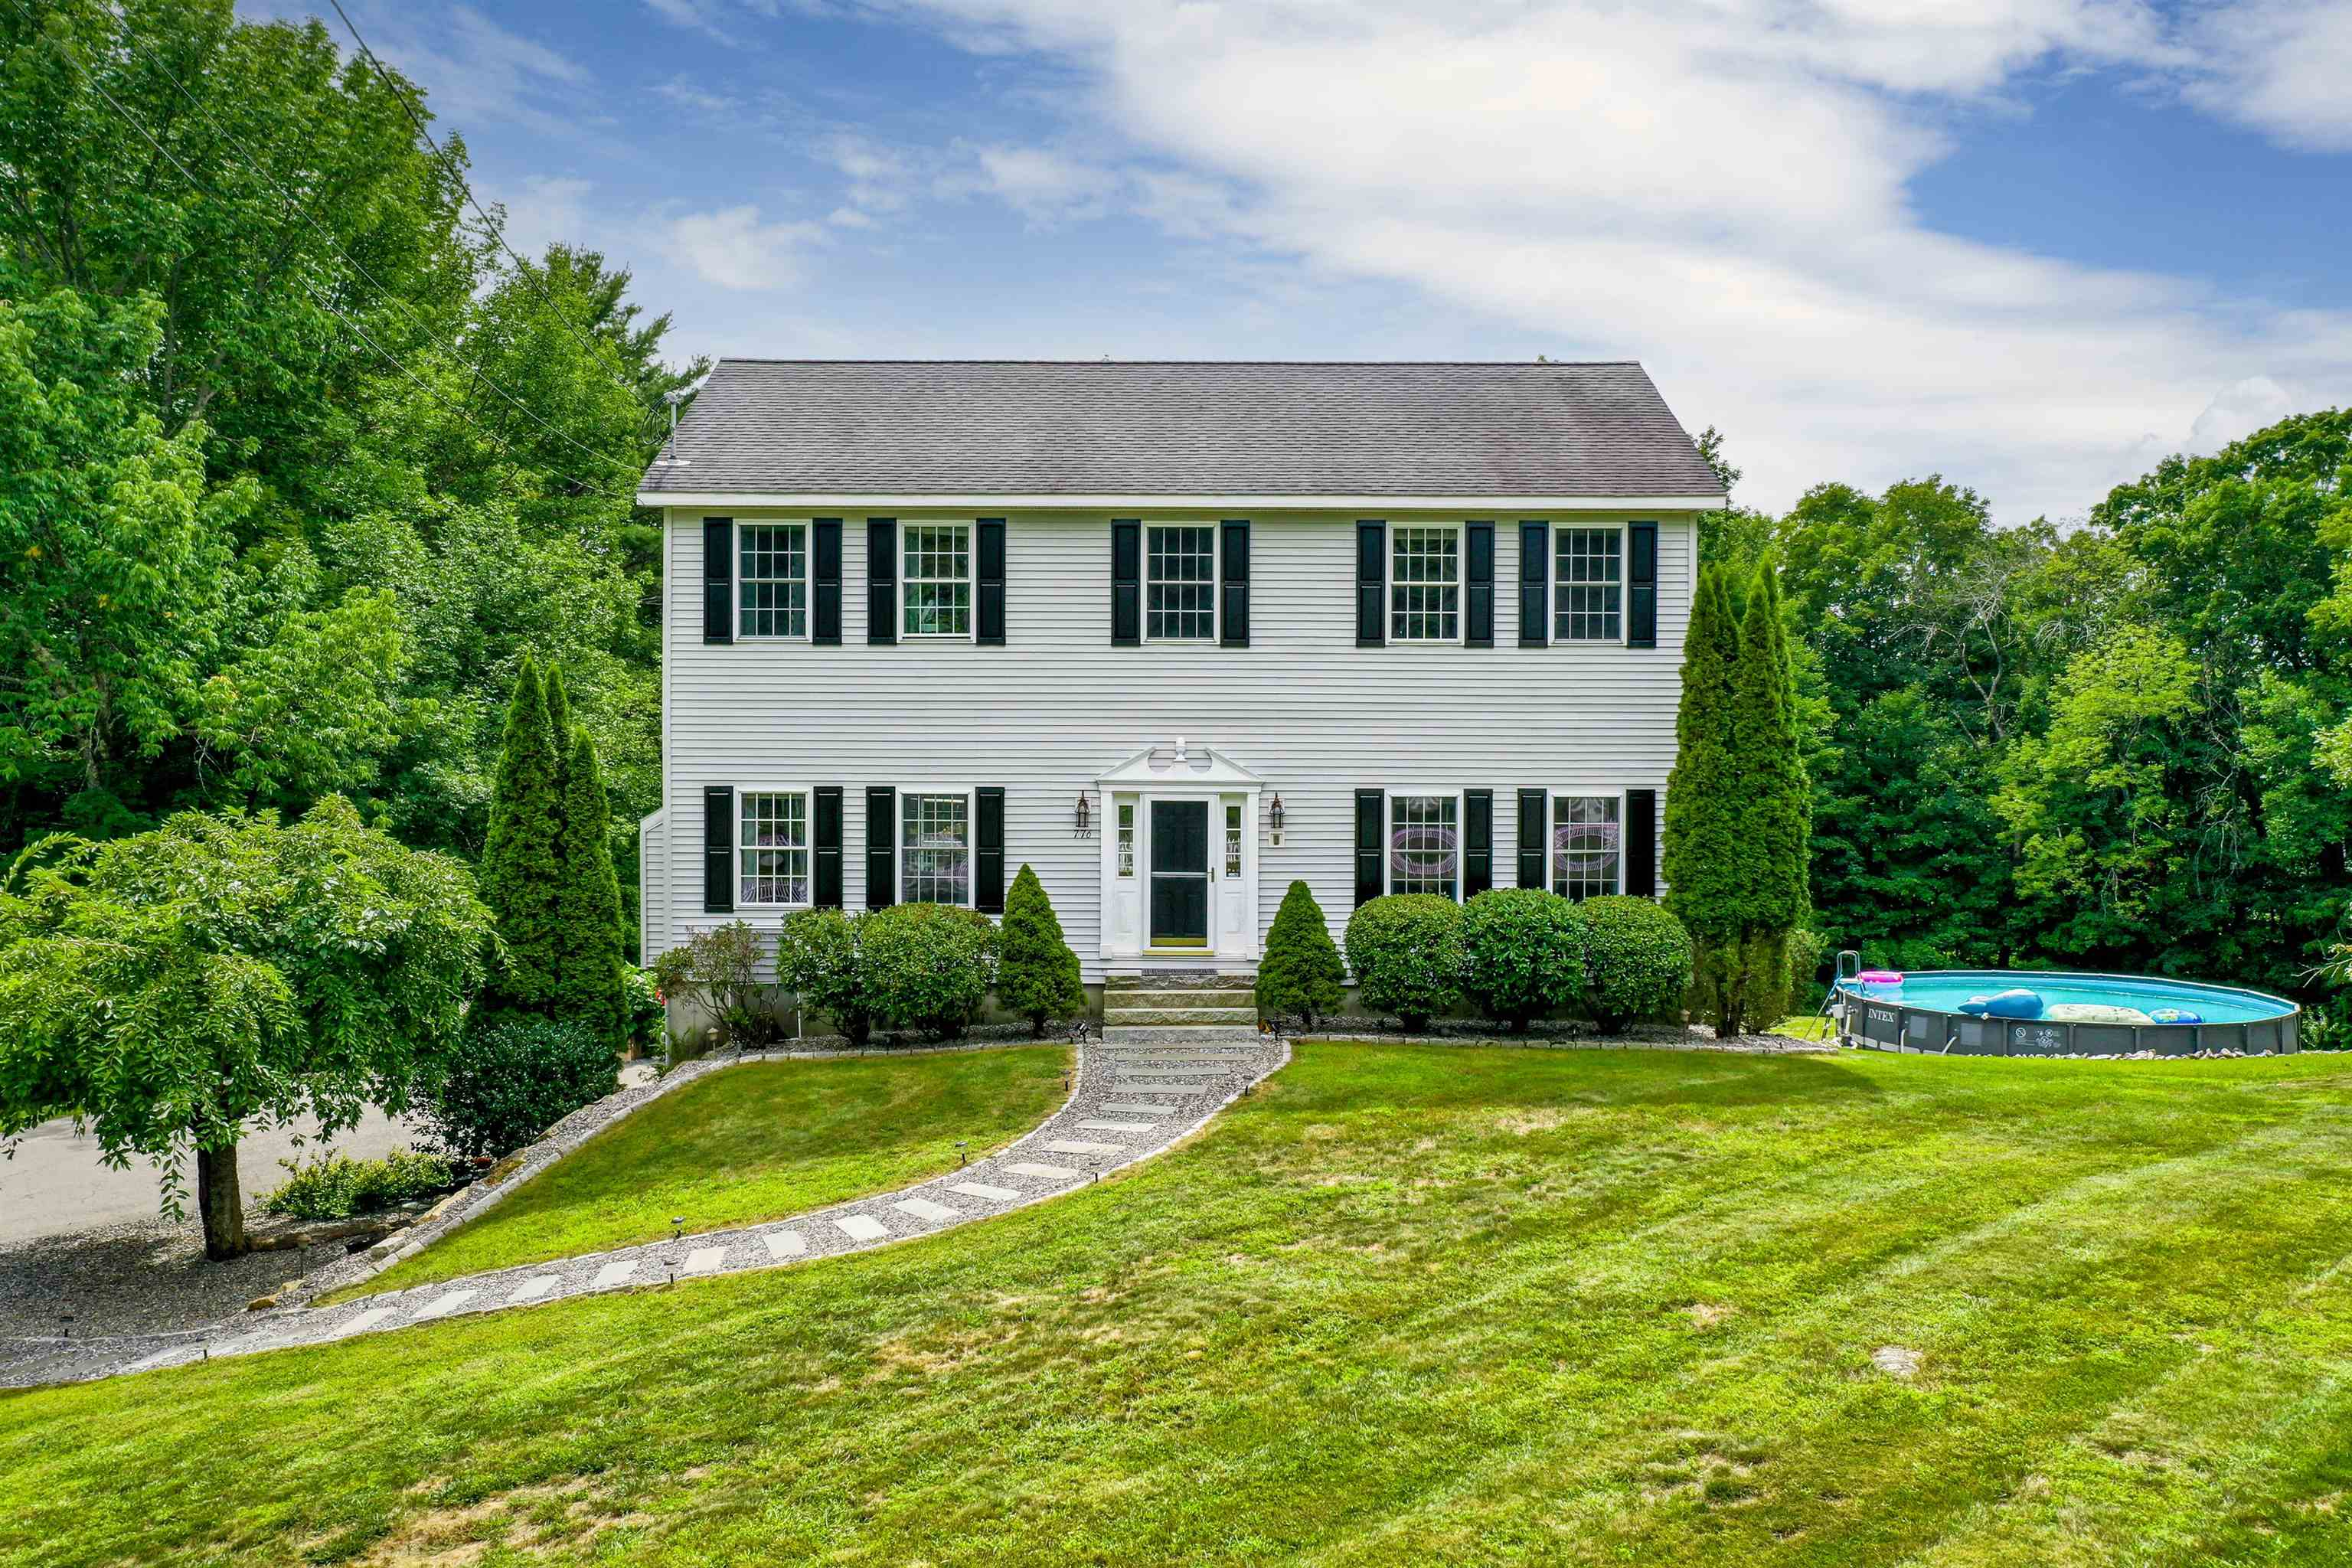 776 Meredith Center Road, Laconia, NH 03246